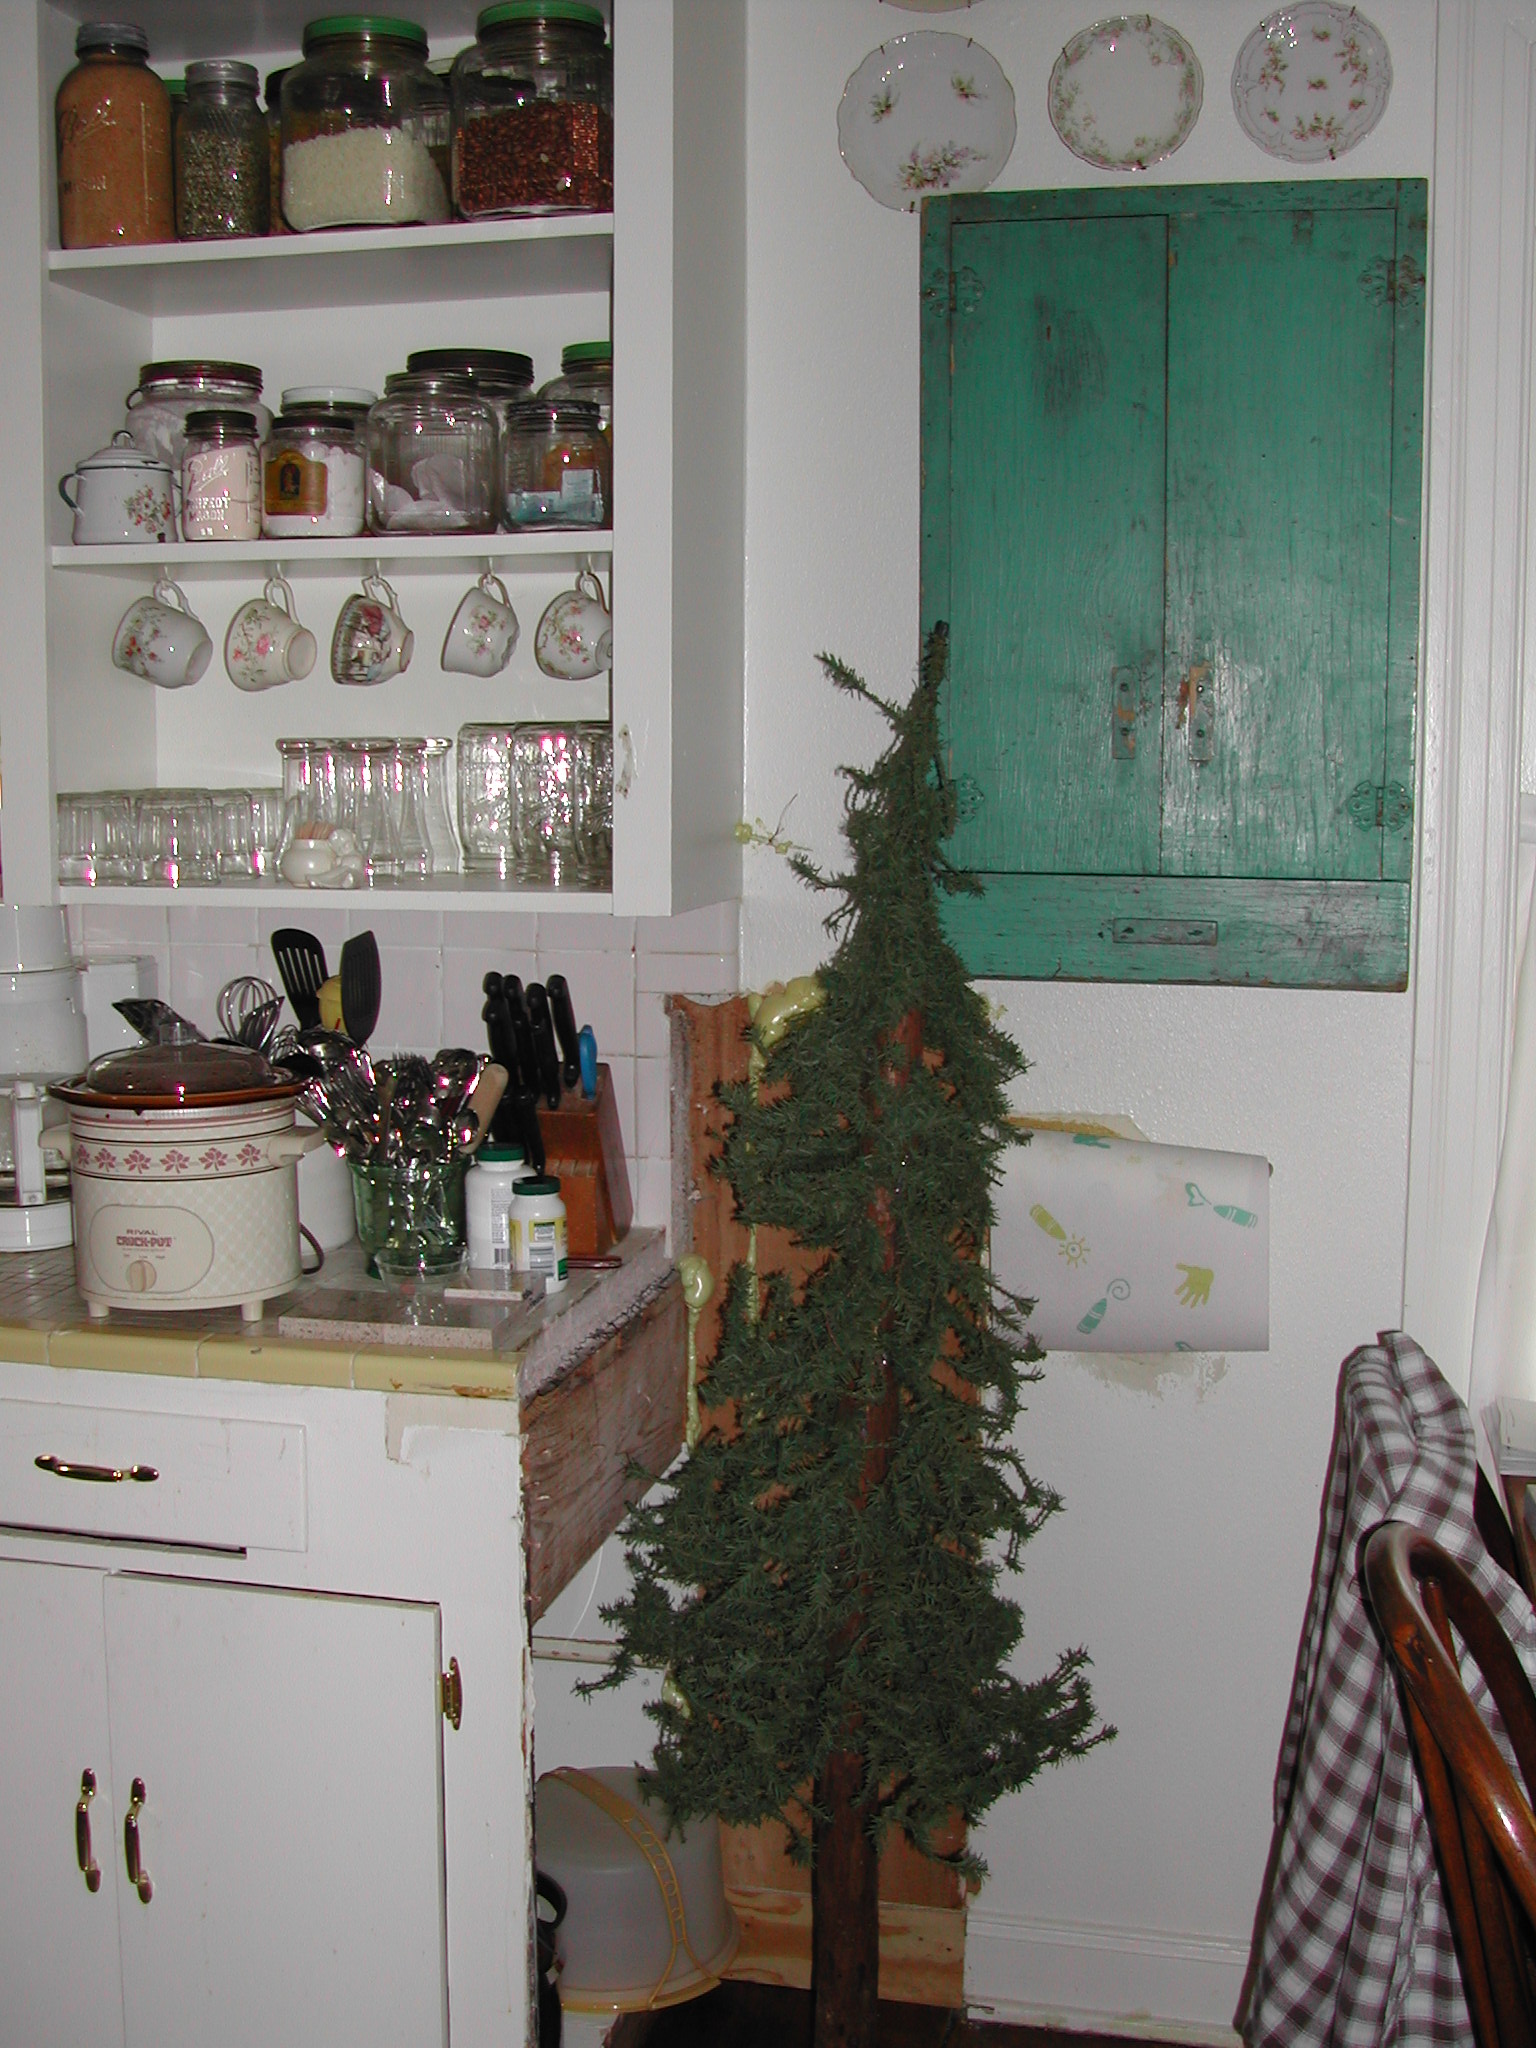 Ruth Avenue kitchen - before - Charlie Brown tree hiding terrible patch job